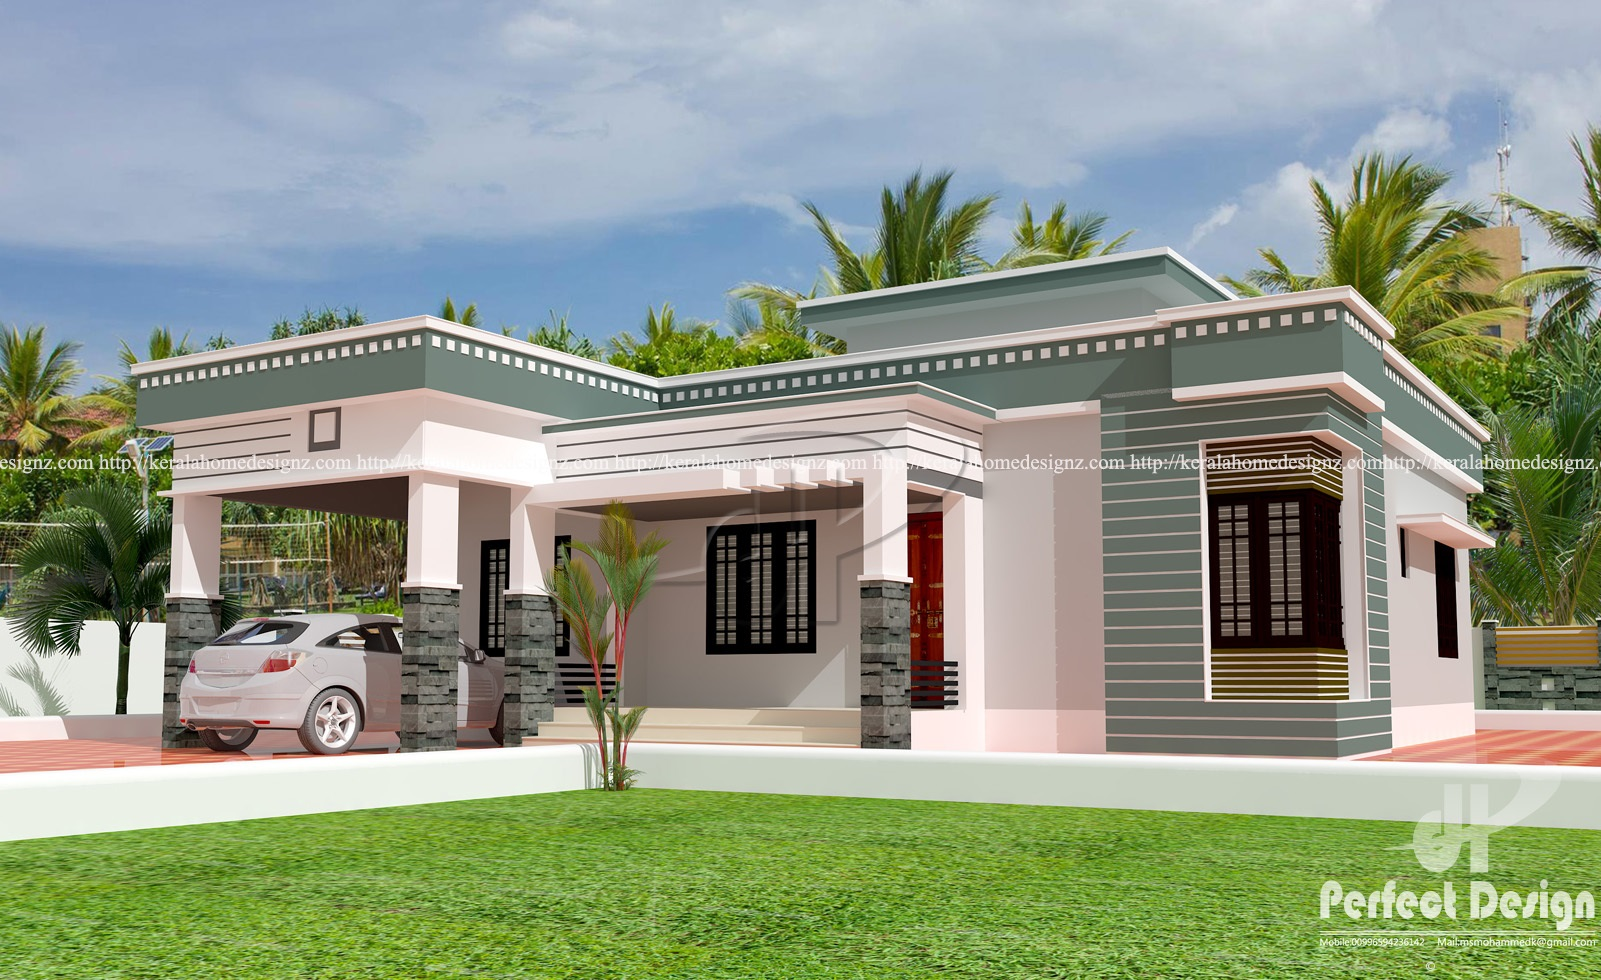 3 bed room modern single floor home kerala home design House deaigns